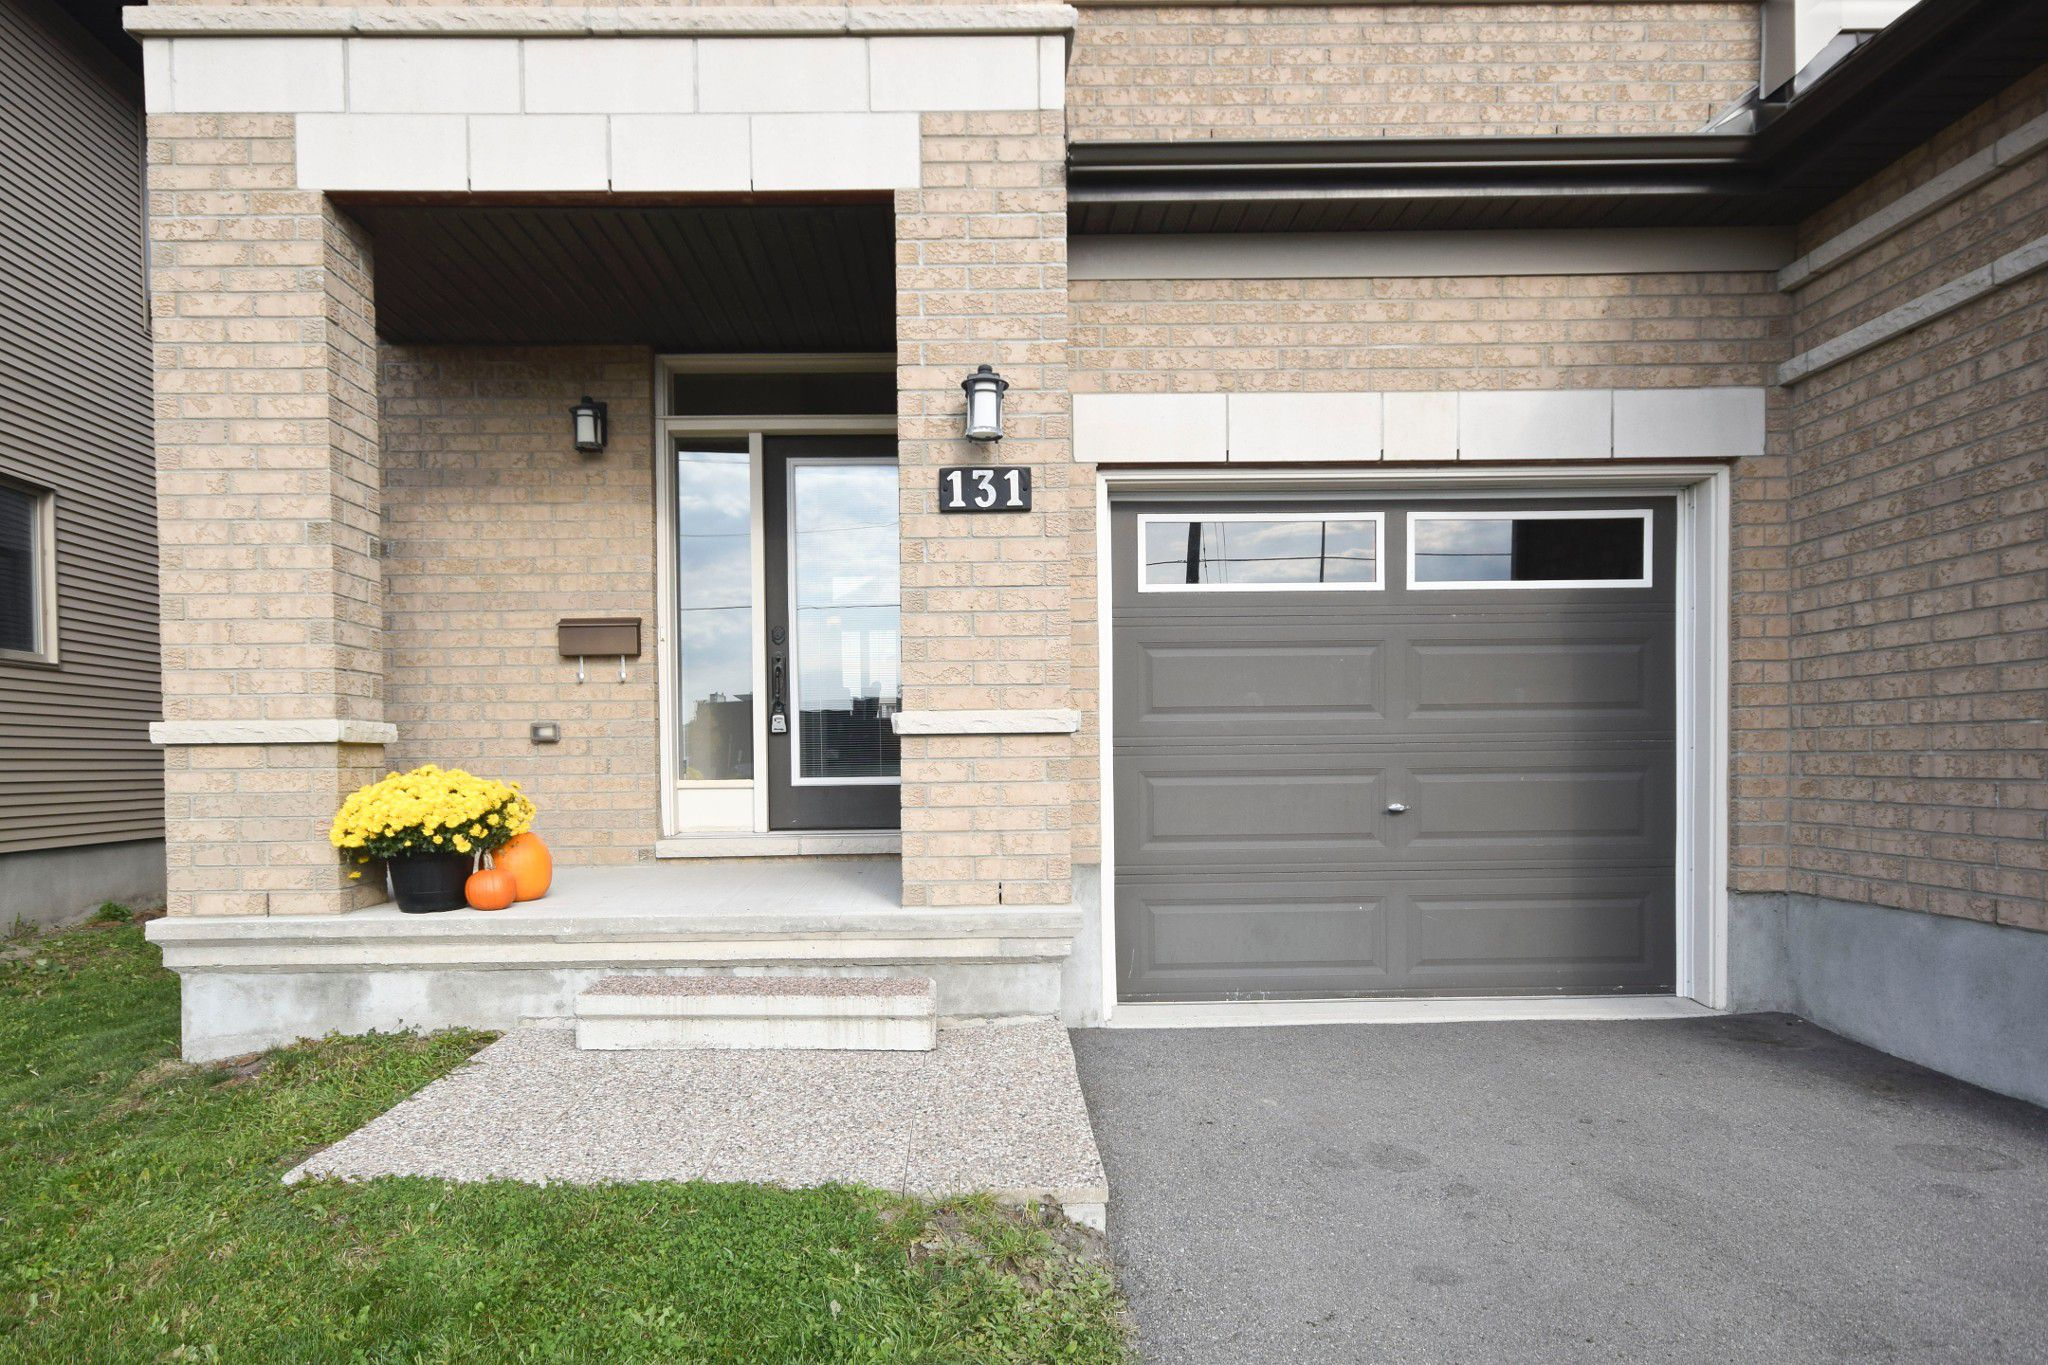 Photo 5: Photos: 131 Popplewell Crescent in Ottawa: Cedargrove / Fraserdale House for sale (Barrhaven)  : MLS®# 1130335